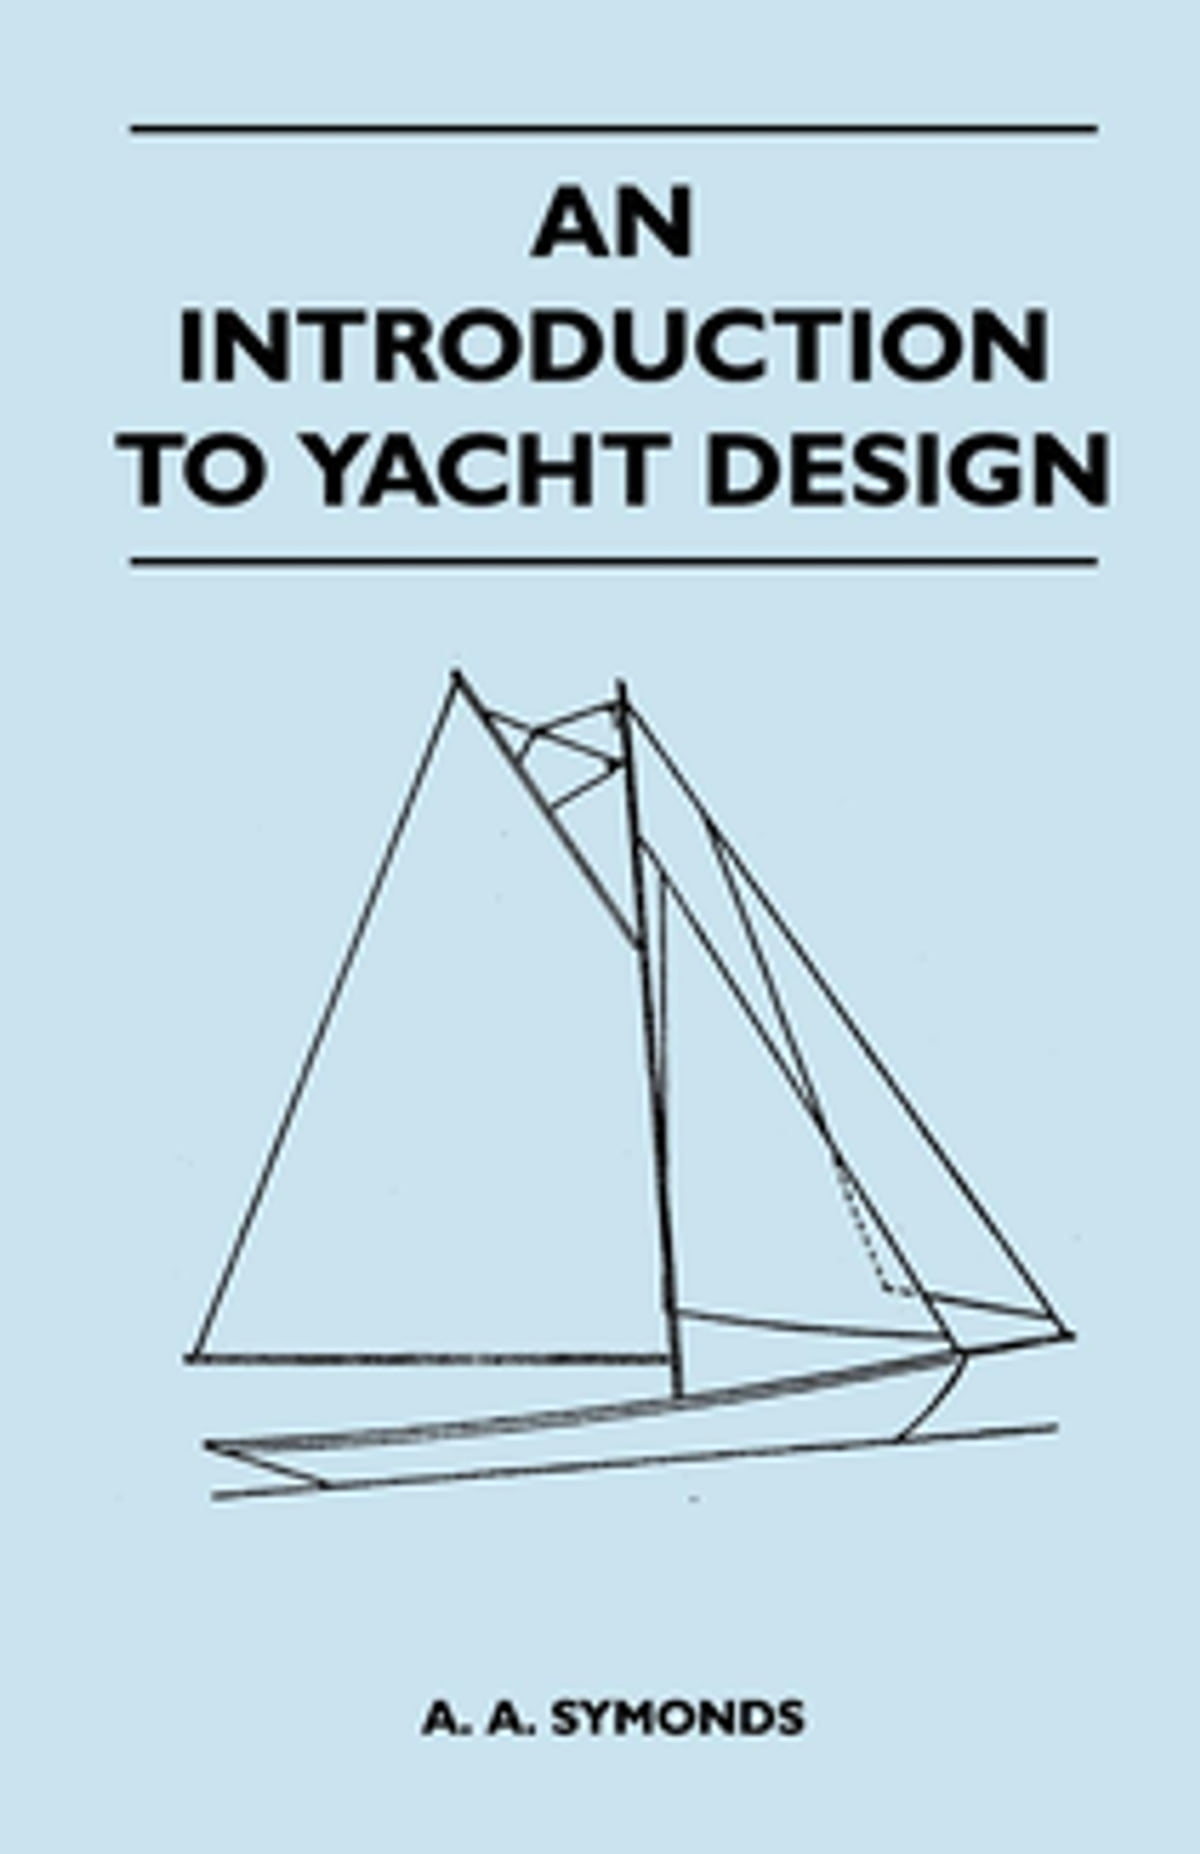 an introduction to the history of non stop yacht s l 50 out of 5 stars a balanced, even-toned introduction to the history, beliefs, and organization of the episcopal church in the us by e s graham on march 15, 2014 format: kindle edition verified purchase.